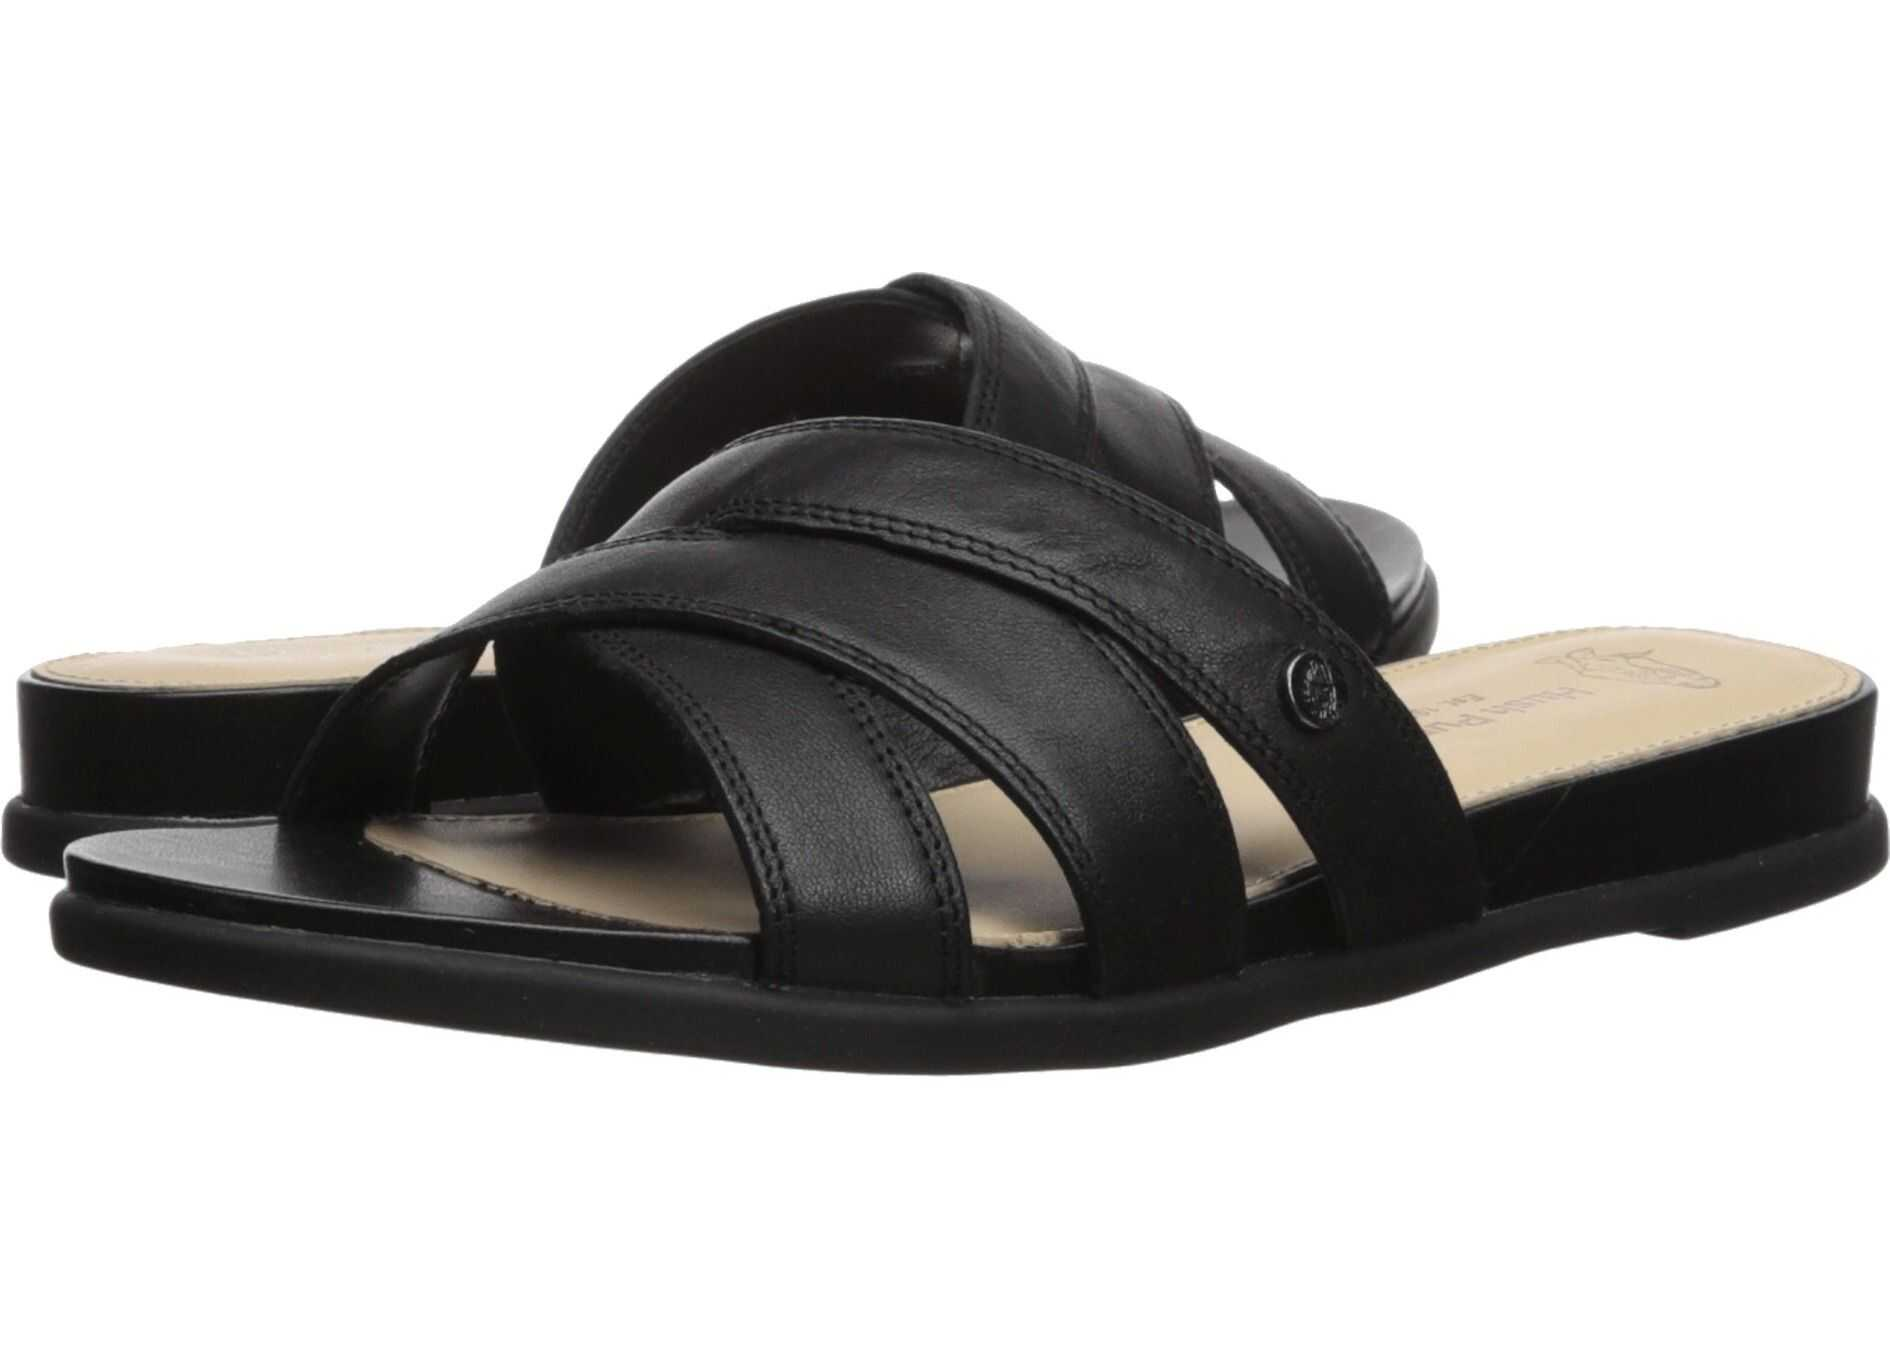 Hush Puppies Dalmatian Slide Black Leather